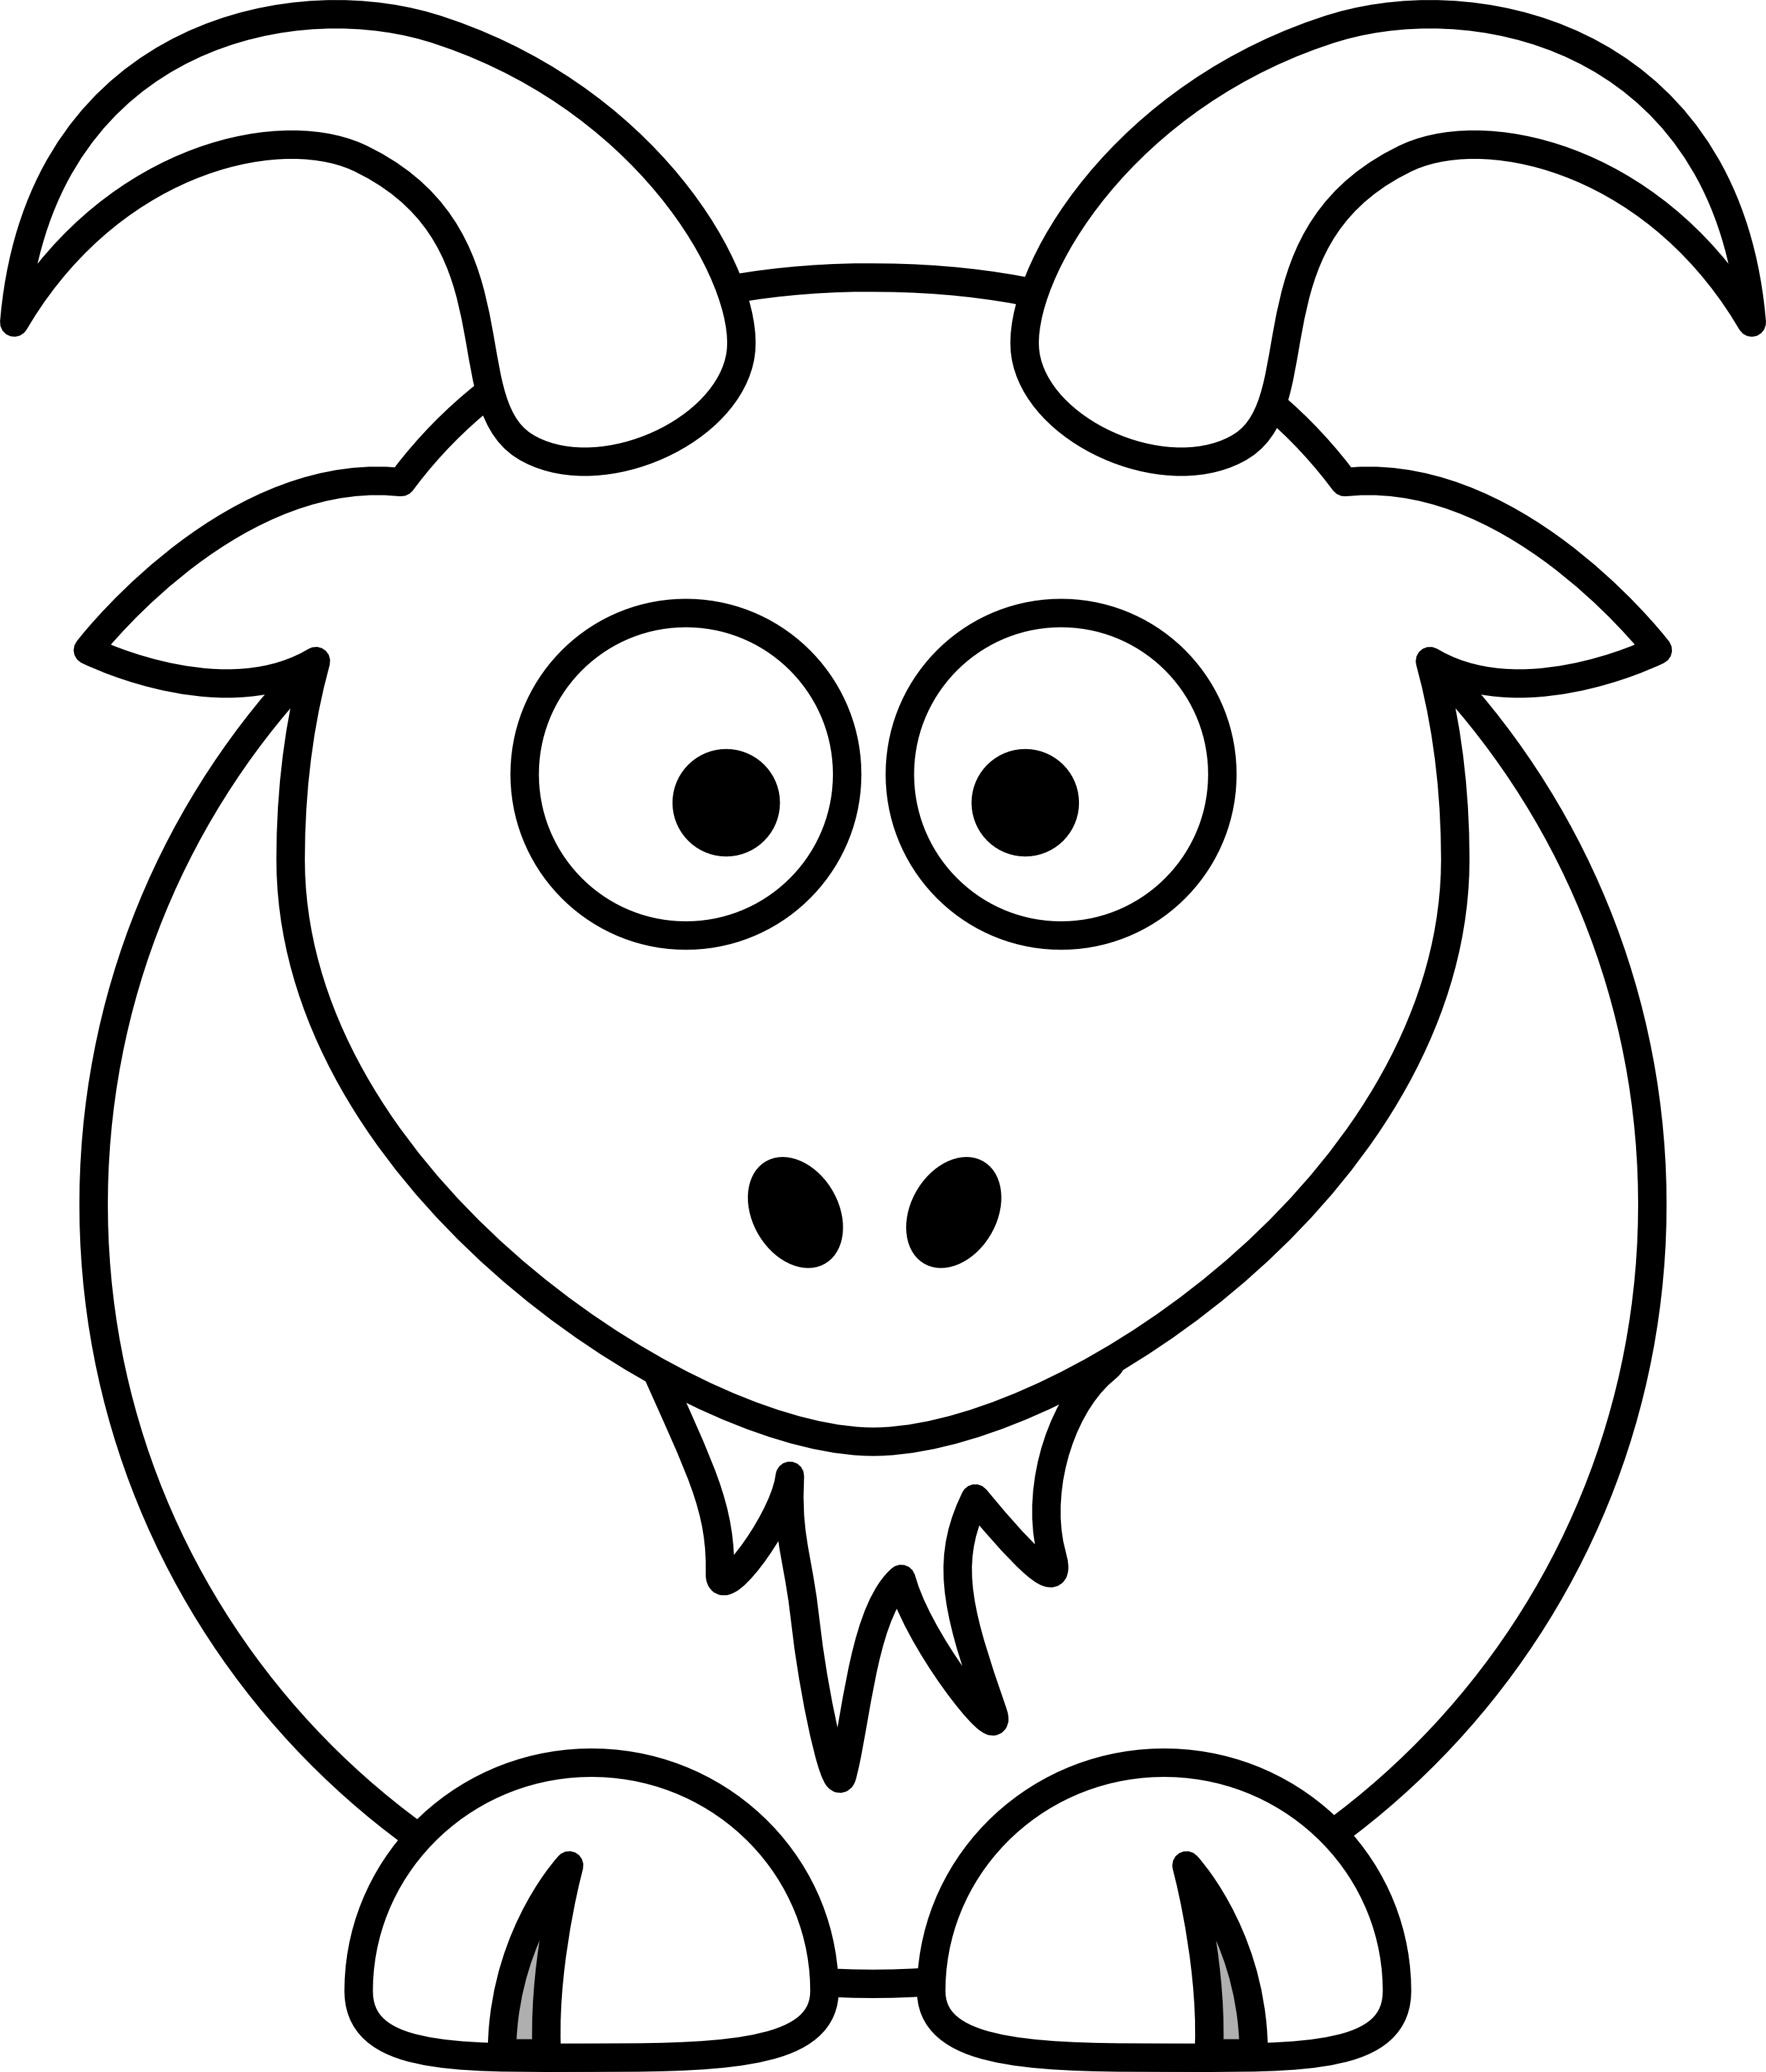 Found money clipart black and white clip art royalty free stock Animals Clipart Black And White - ClipArt Best | FELTING | Pinterest ... clip art royalty free stock